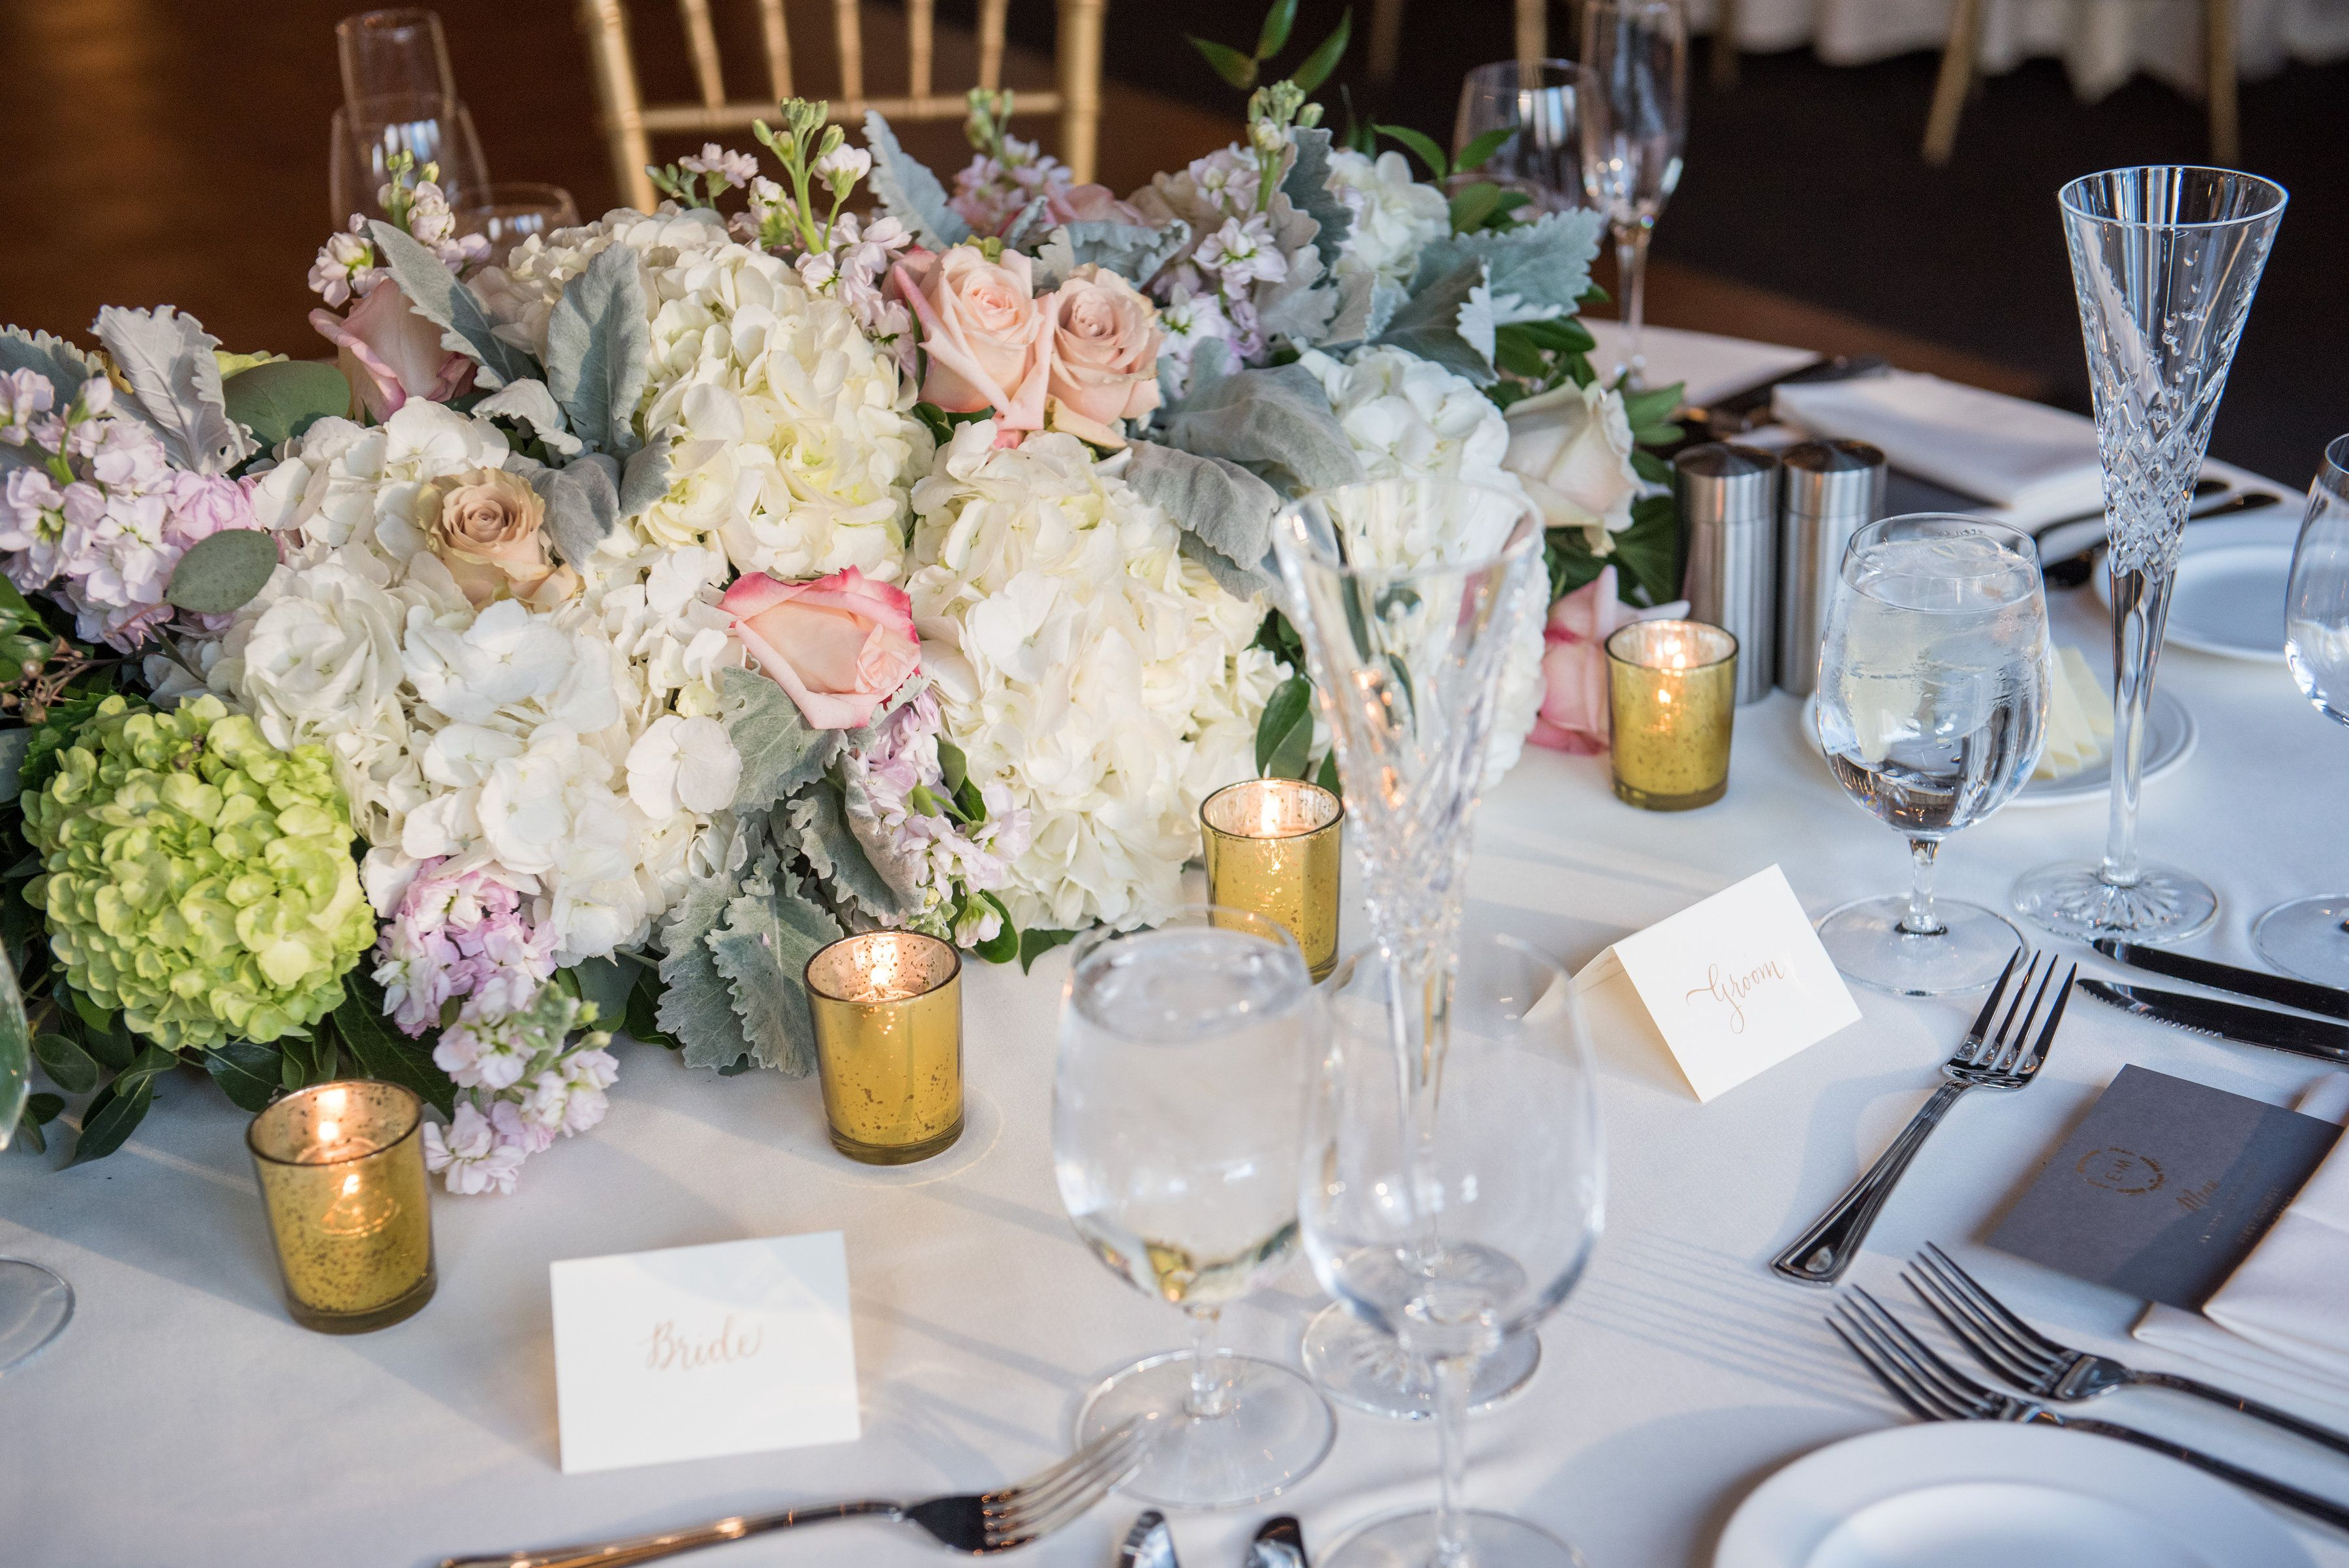 Bella Floral did an amazing job with these center pieces! Photograph by Gerber & Scarpelli